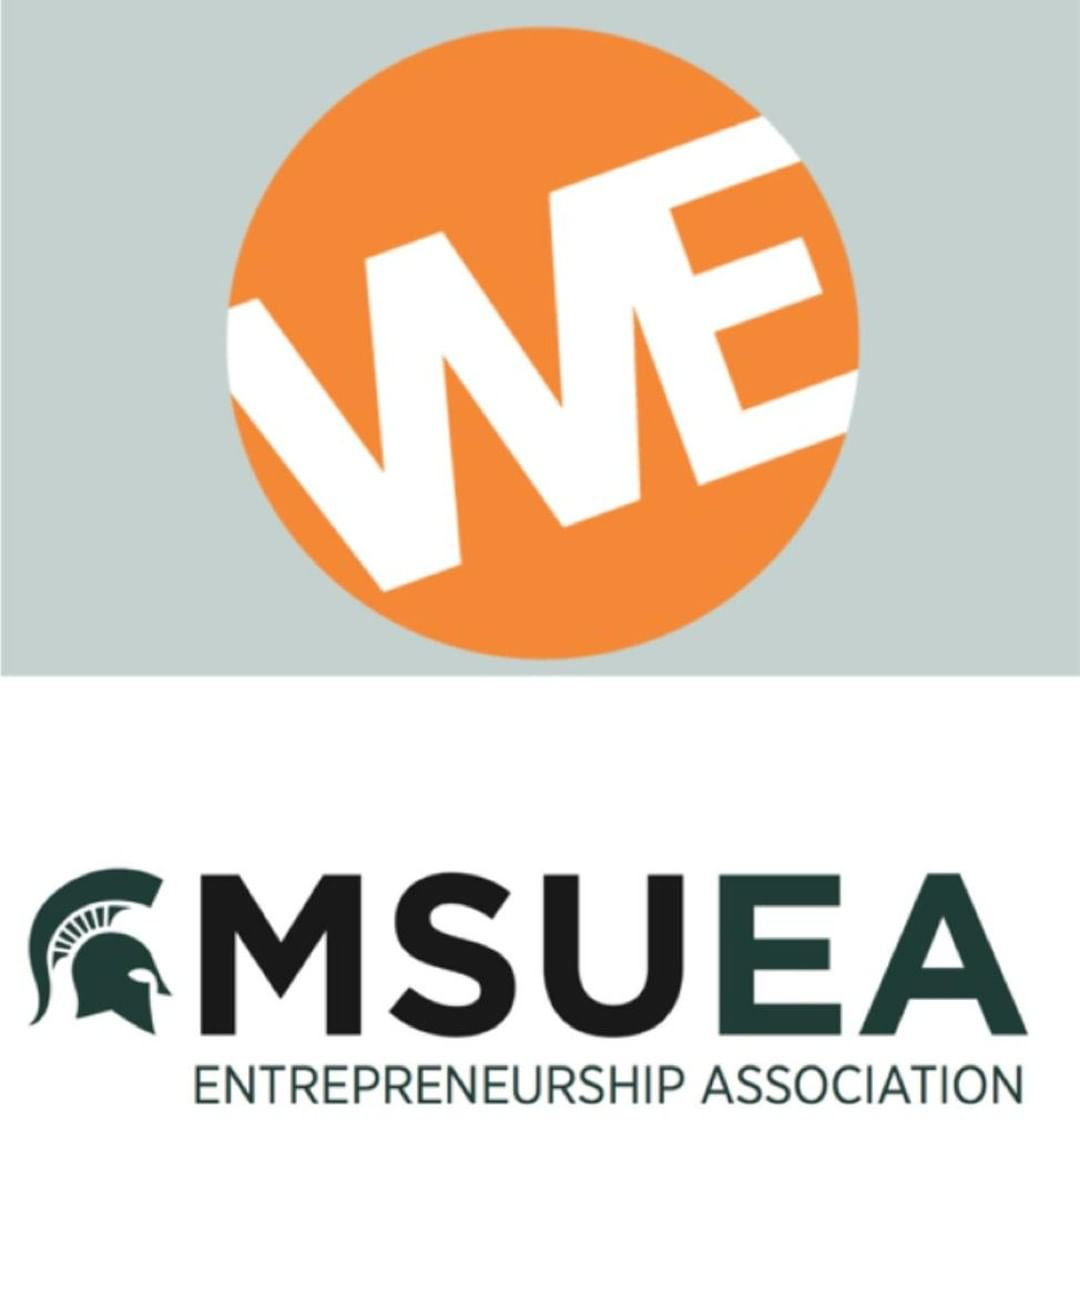 Looking to get more involved in the Entrepreneurial ecosystem? Check out our awesome student orgs! @msu_ea and @msu_we!